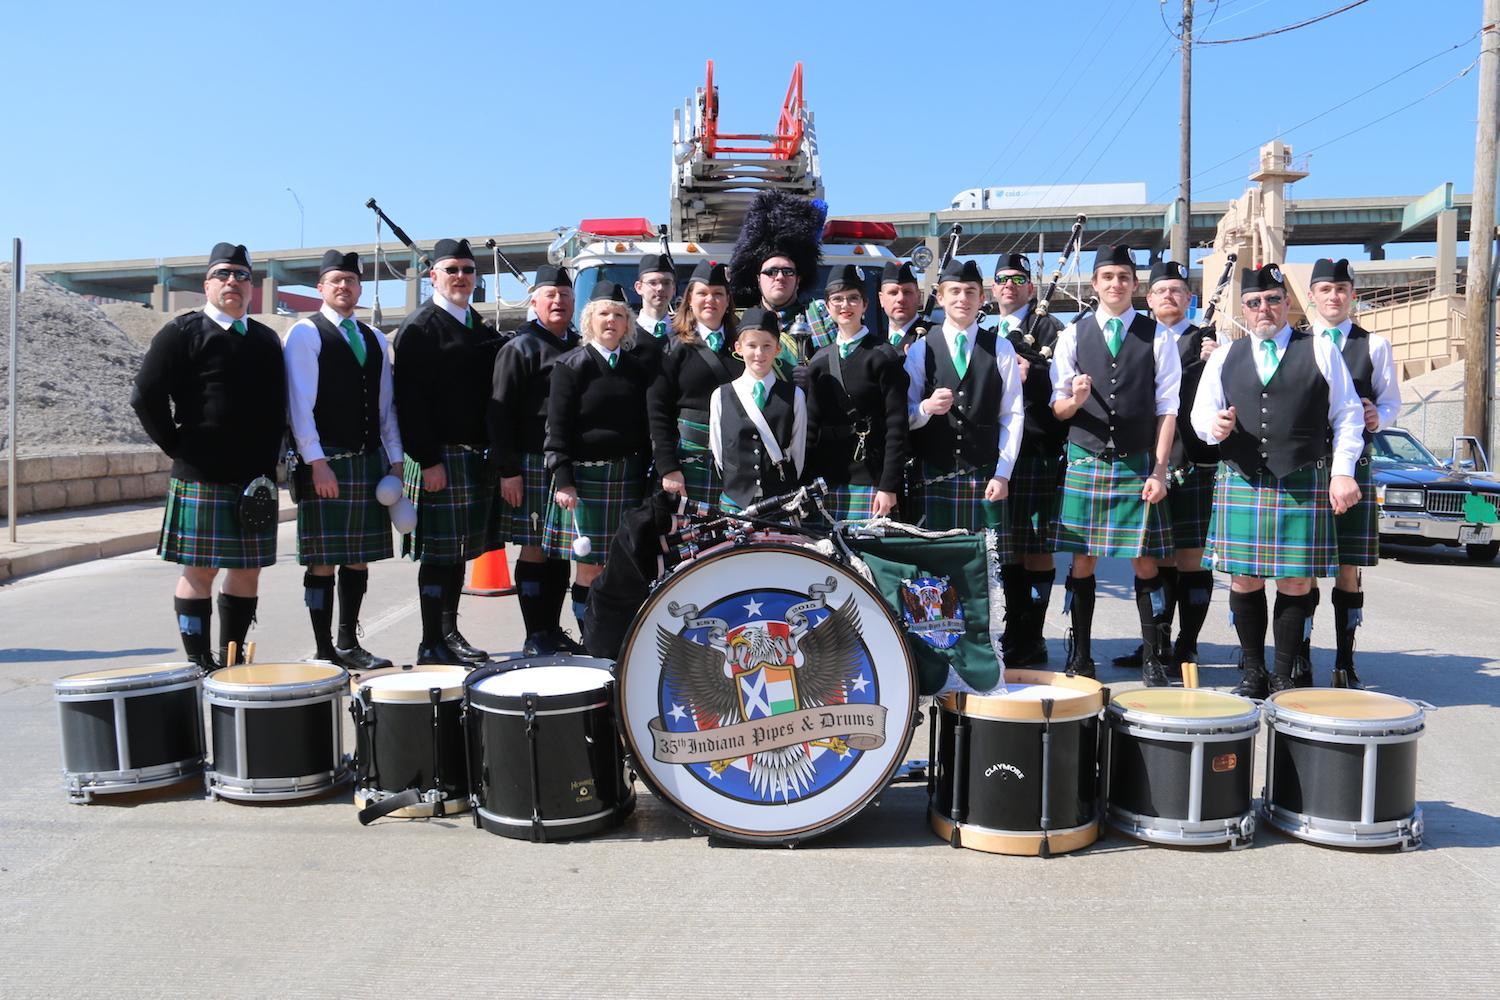 The 2018 St. Patrick's Day Parade took place on Saturday, March 10 in Downtown Cincinnati. / Image: Dr. Richard Sanders // Published: 3.11.18